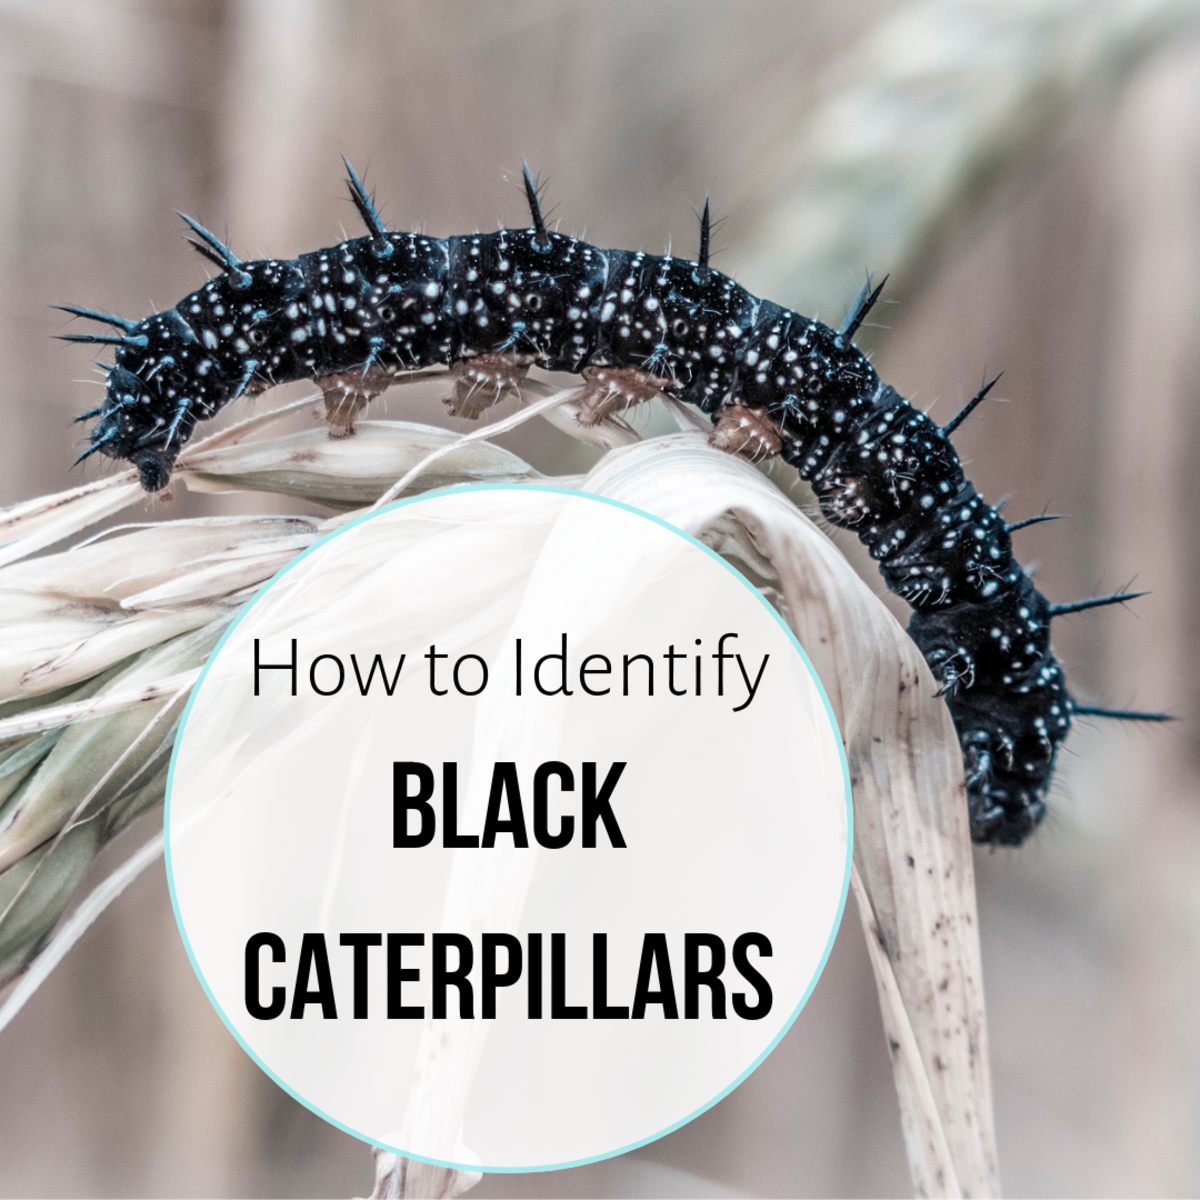 Black Caterpillars: An Identification Guide to Common Species